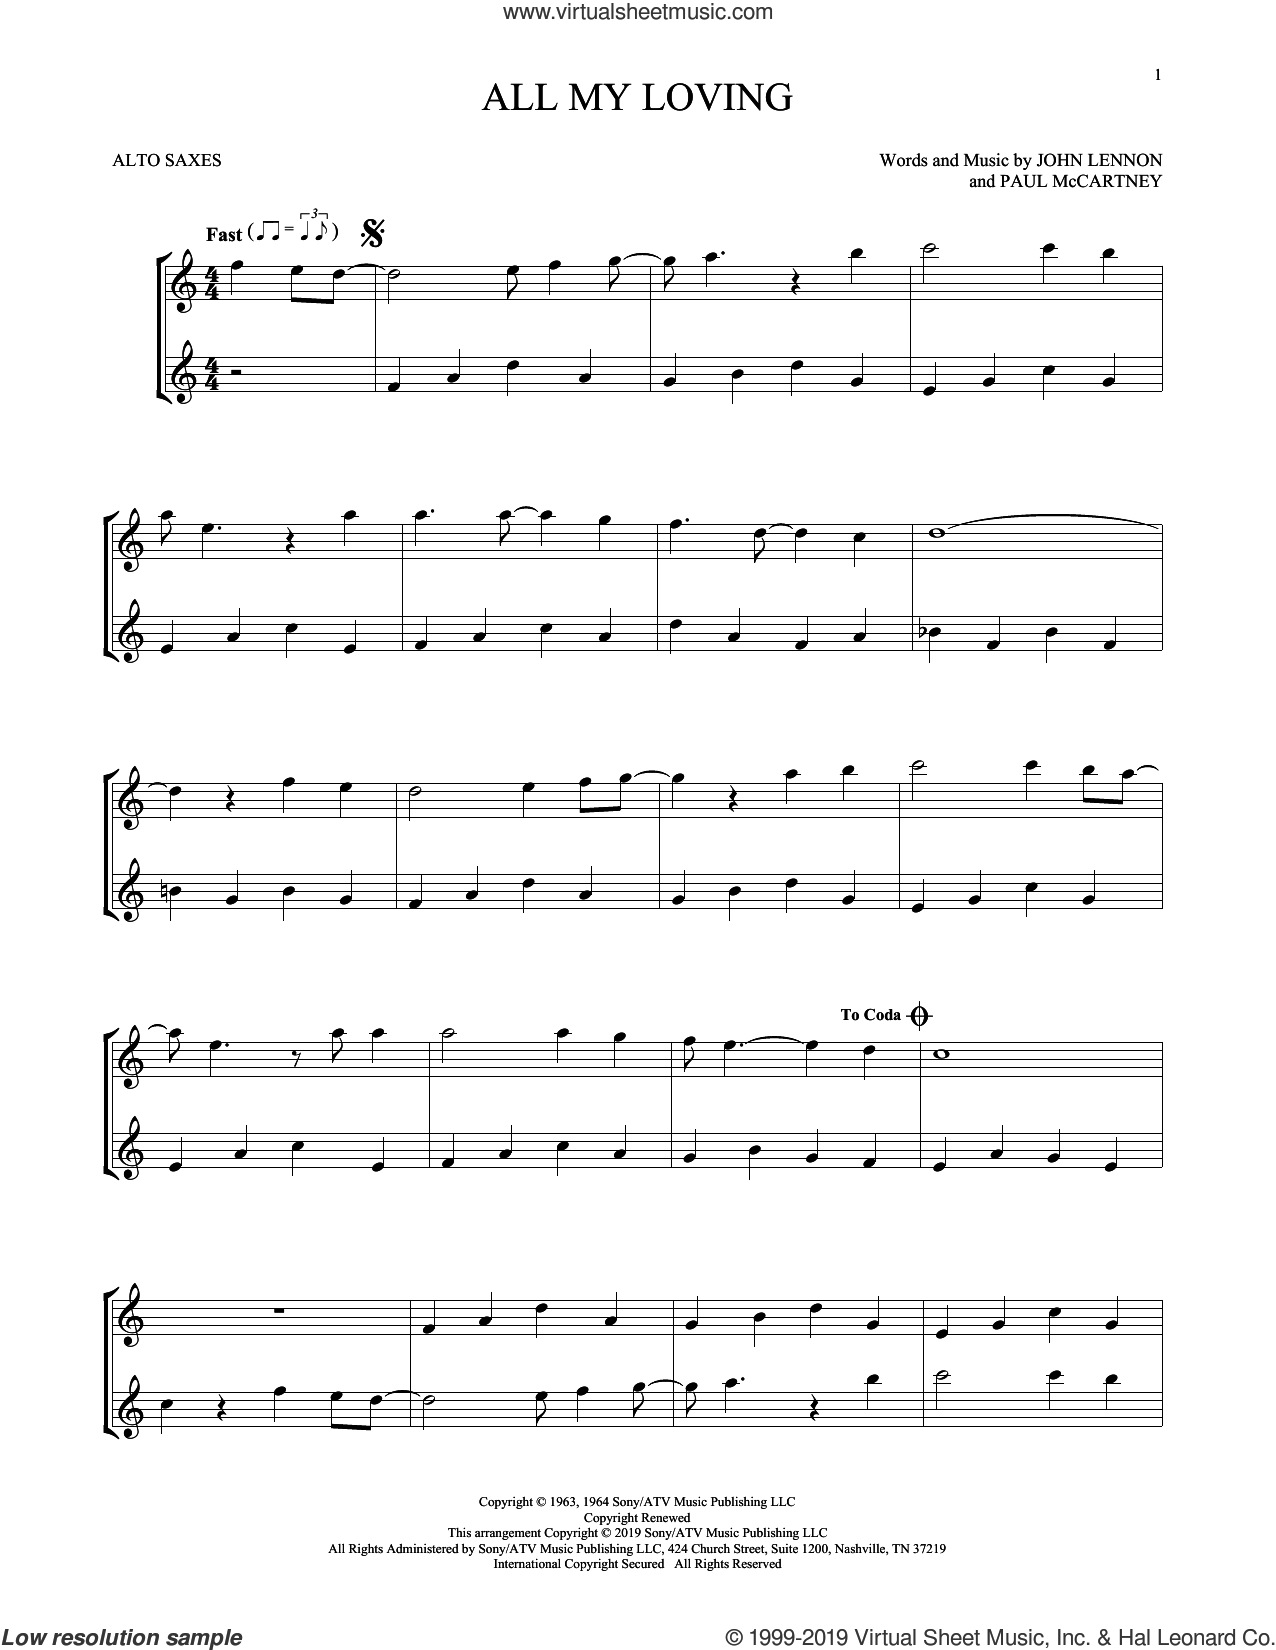 All My Loving sheet music for two alto saxophones (duets) by The Beatles, John Lennon and Paul McCartney, intermediate skill level